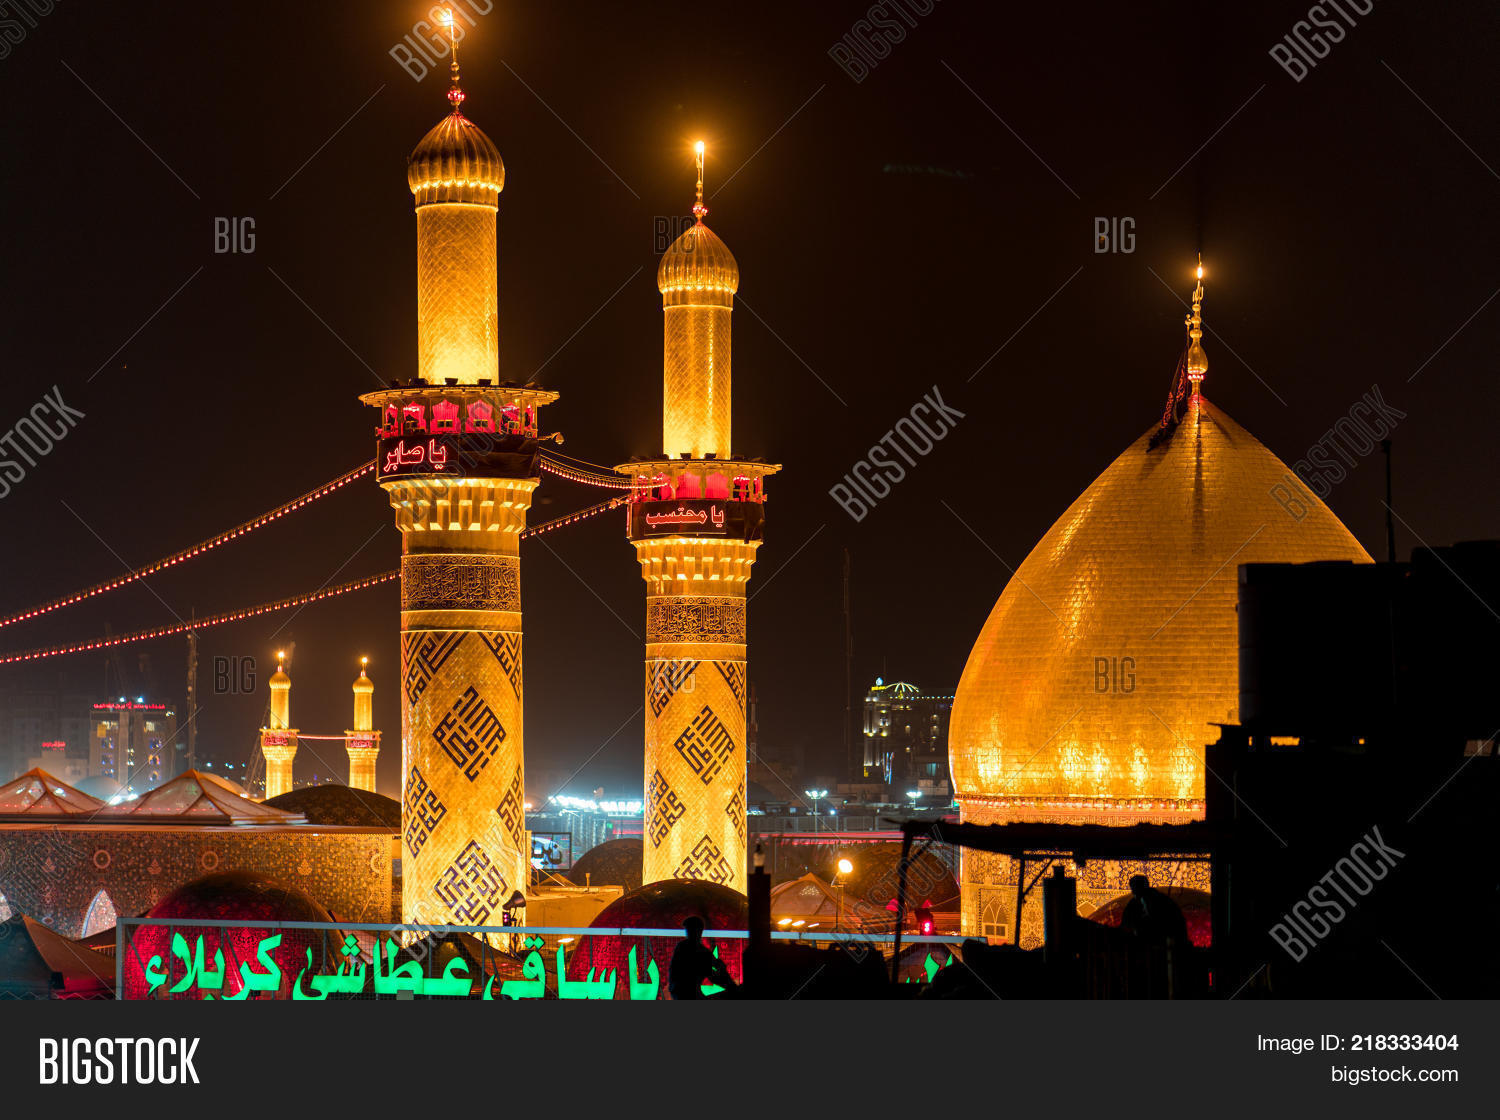 Maula Ali Shrine Wallpaper: Shrine Imam Hussain Image & Photo (Free Trial)